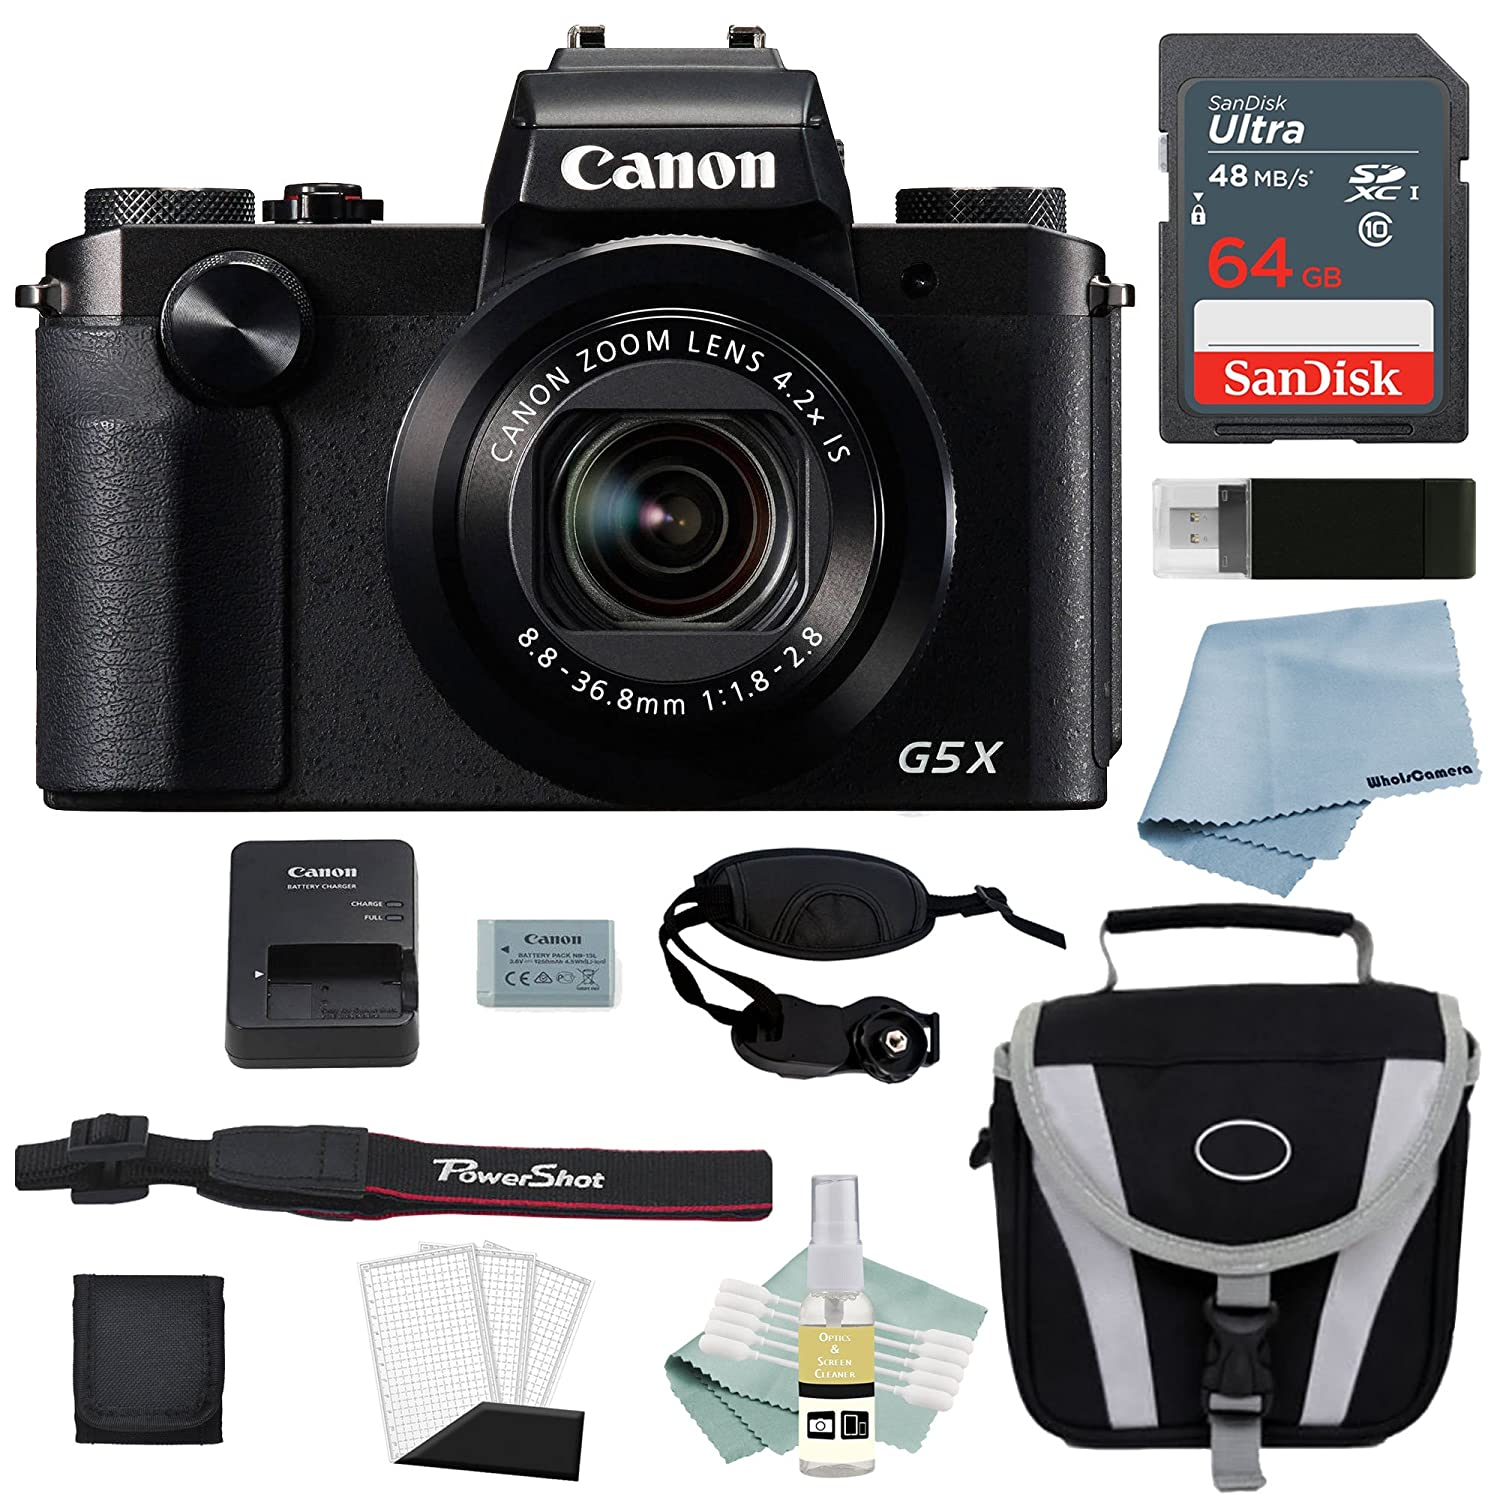 Canon G5x Digital Camera Bundle Powershot Kamera Pocket Deluxe Accessory Kit Including Everything You Need To Get Started Photo